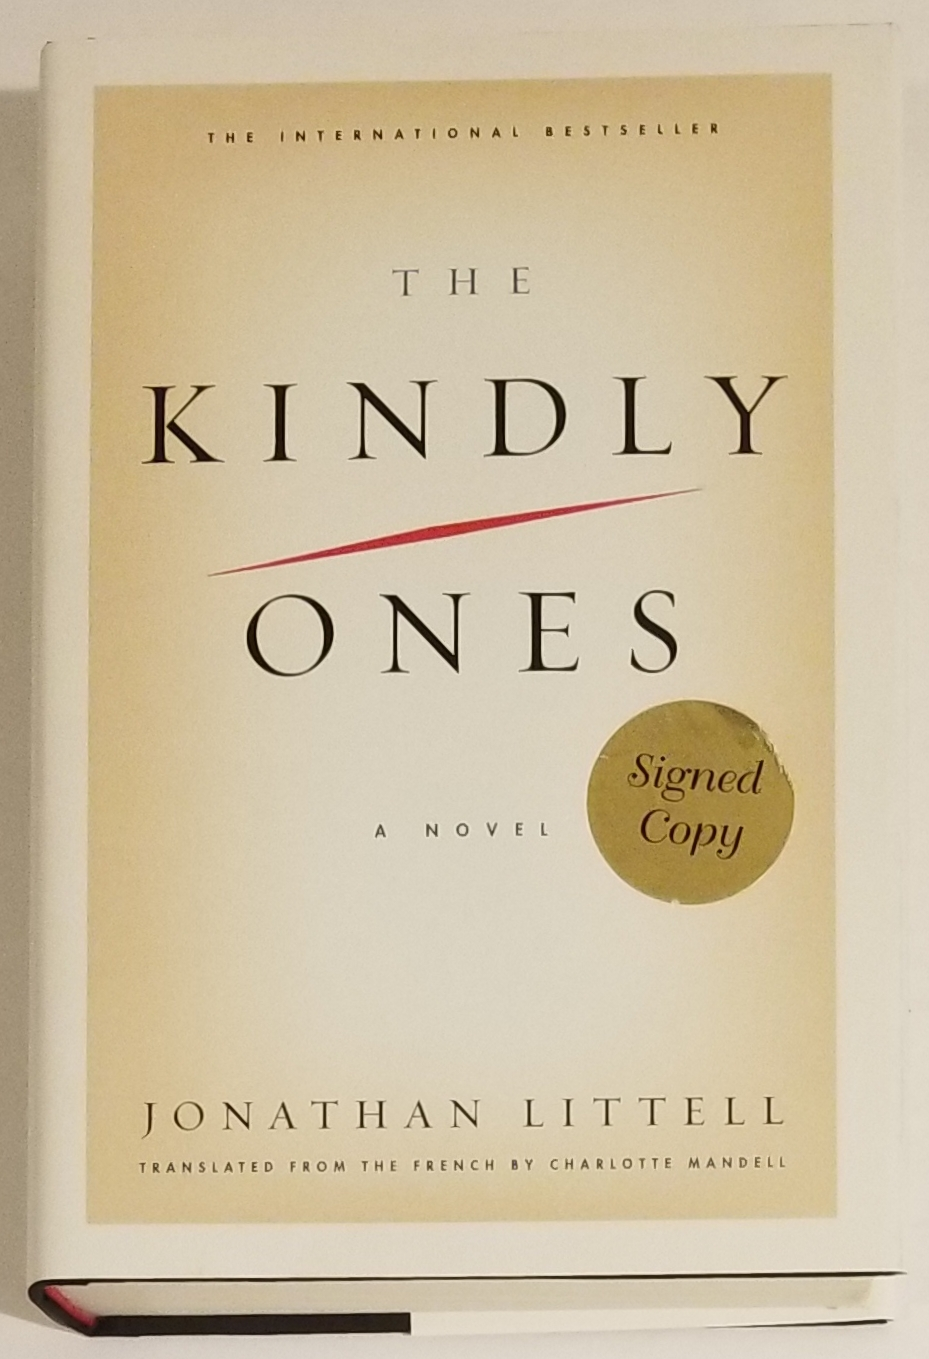 THE KINDLY ONES. Jonathan Littell.